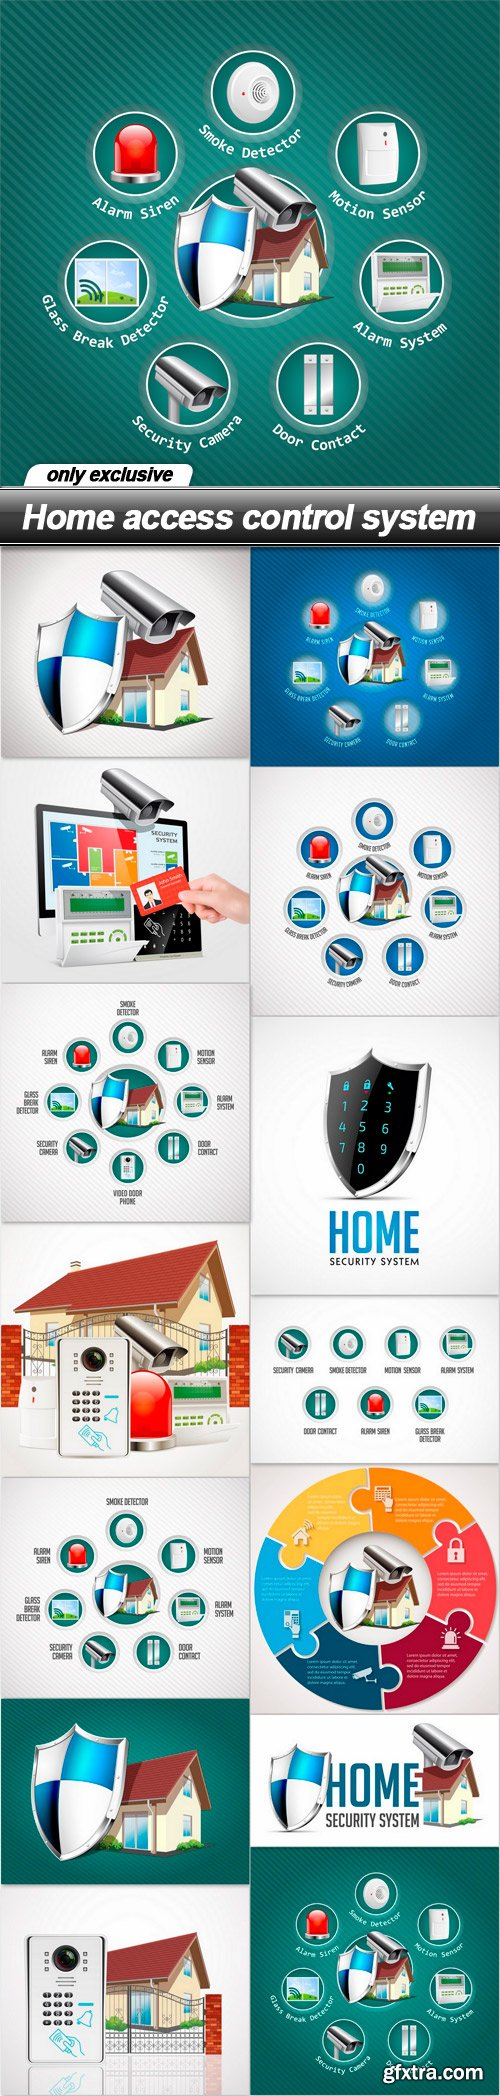 Home access control system - 14 EPS